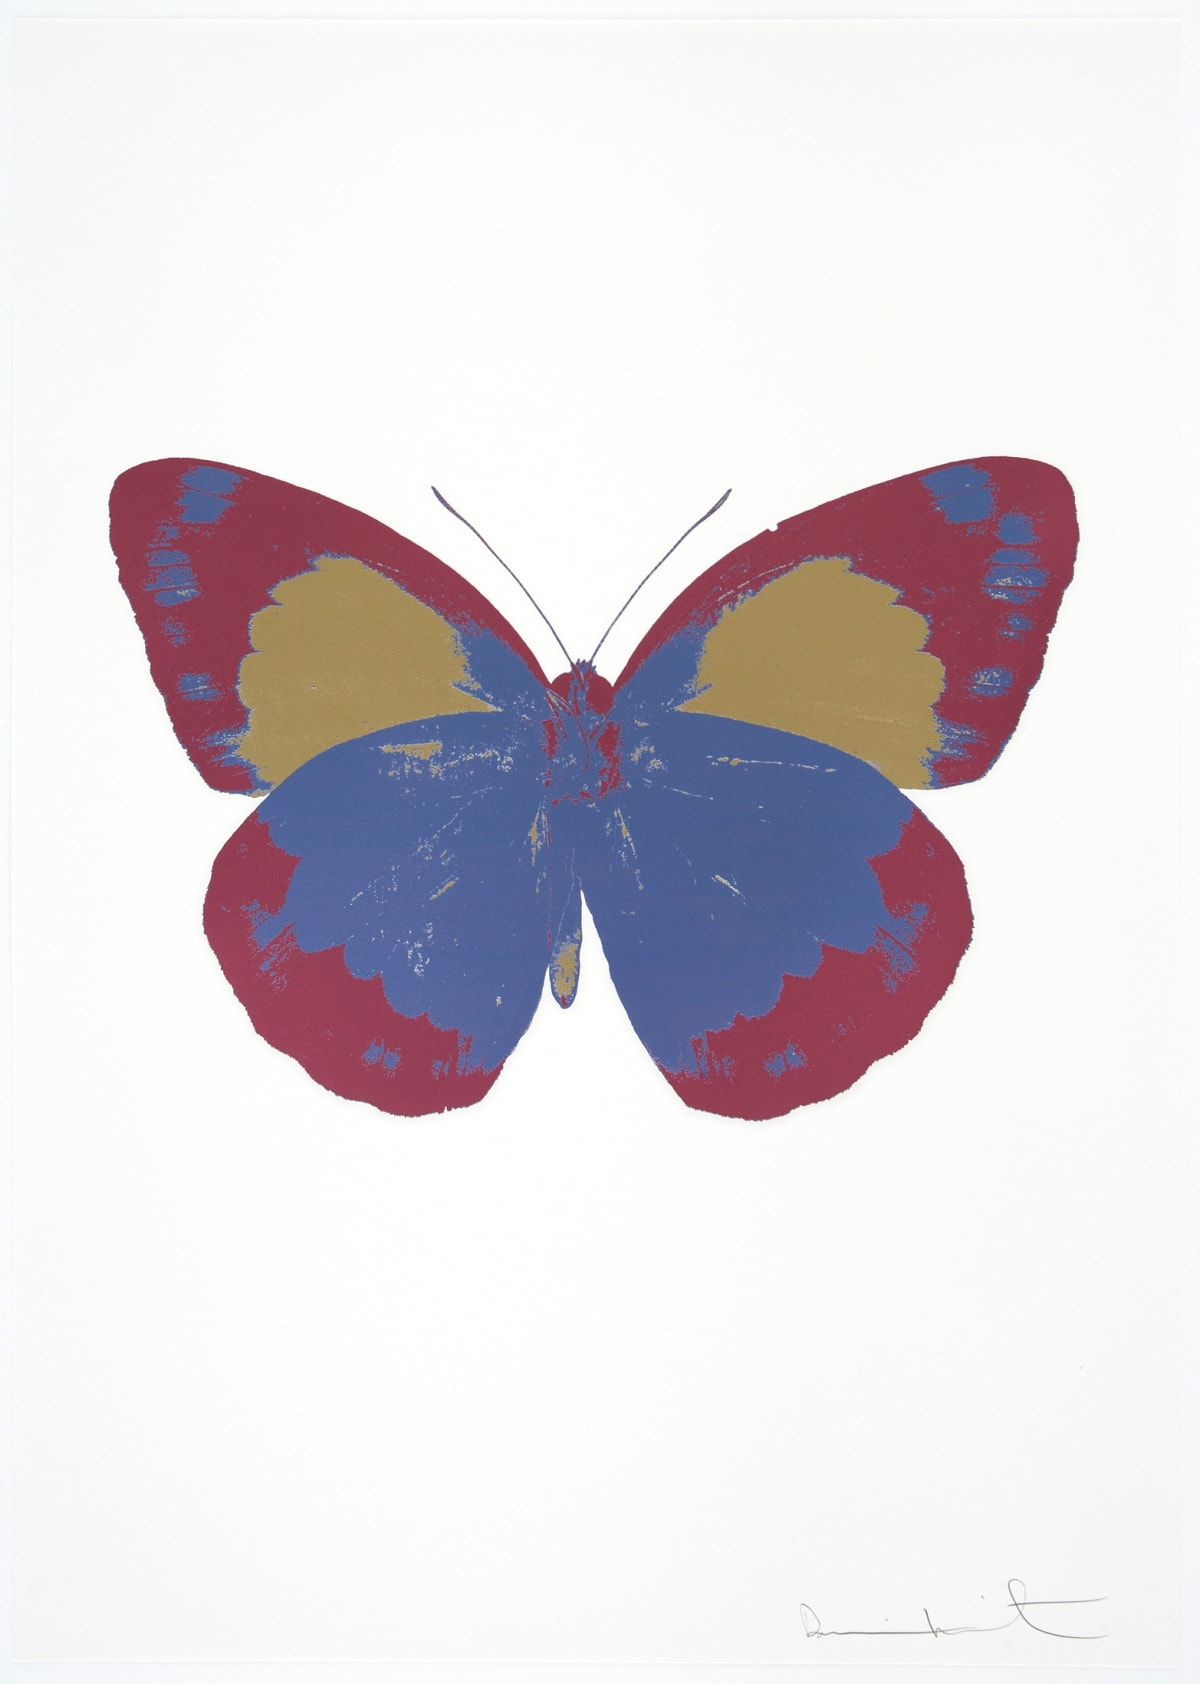 Damien Hirst The Souls II - Cornflower Blue/Loganberry Pink/Cool Gold, 2010 3 colour foil block on 300gsm Arches 88 archival paper. Signed and numbered. Published by Paul Stolper and Other Criteria 72 x 51cm OC7867 / 658-50 Edition of 15